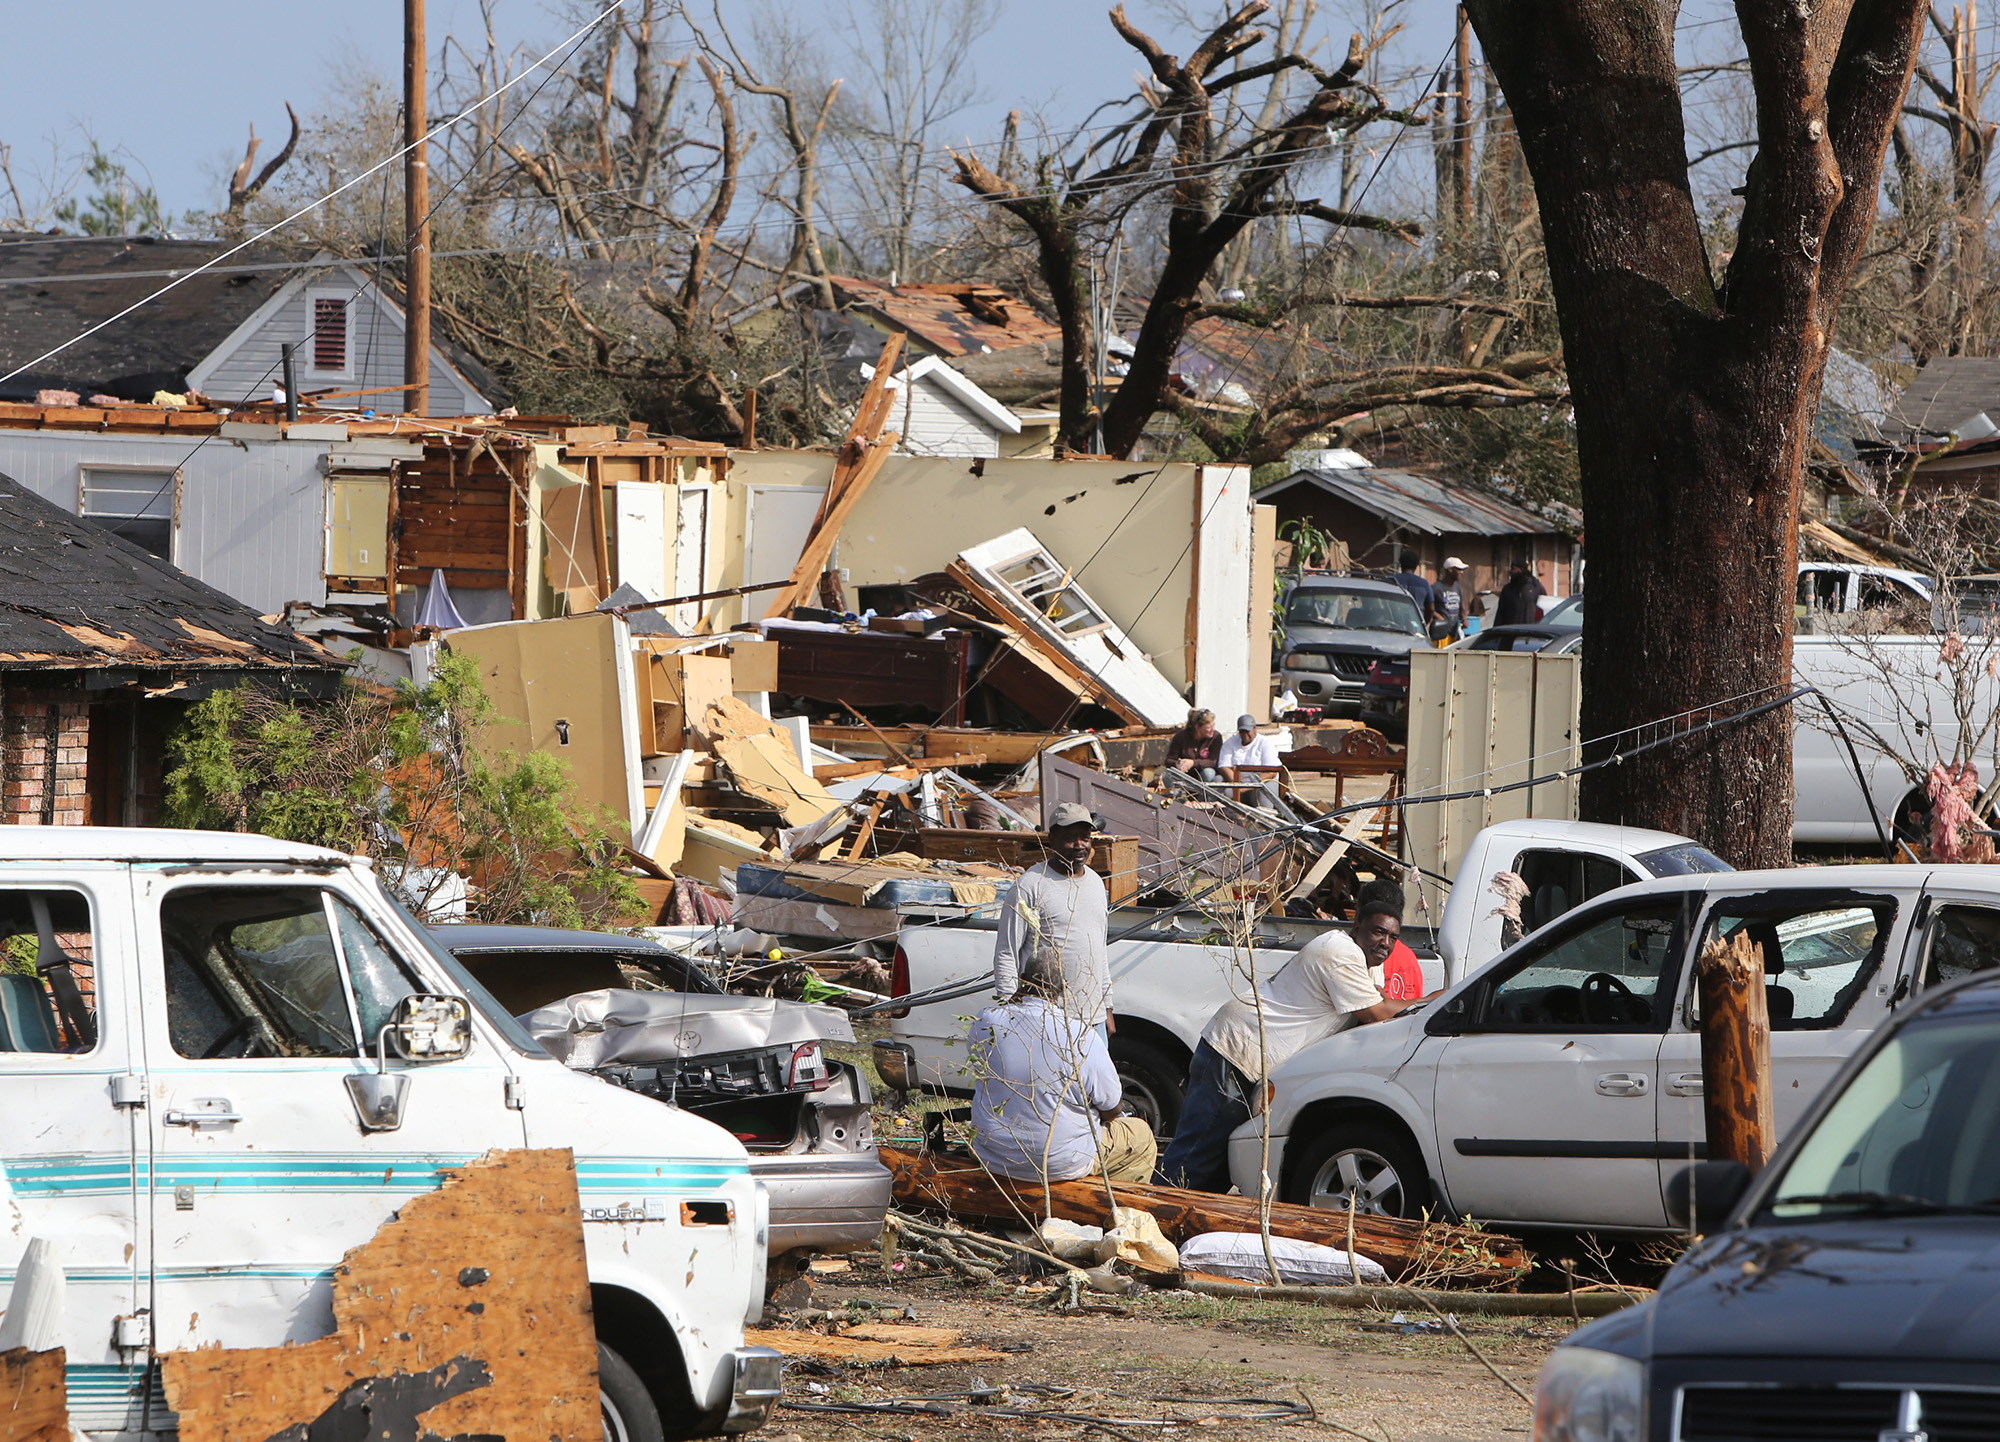 Residents of Magnolia Street in Hattiesburg, Miss., take a break from cleaning up after a tornado hit the area on Saturday, Jan. 21, 2017. Four people died and at least 25 were injured in the storm. (John Fitzhugh/Biloxi Sun Herald/TNS)